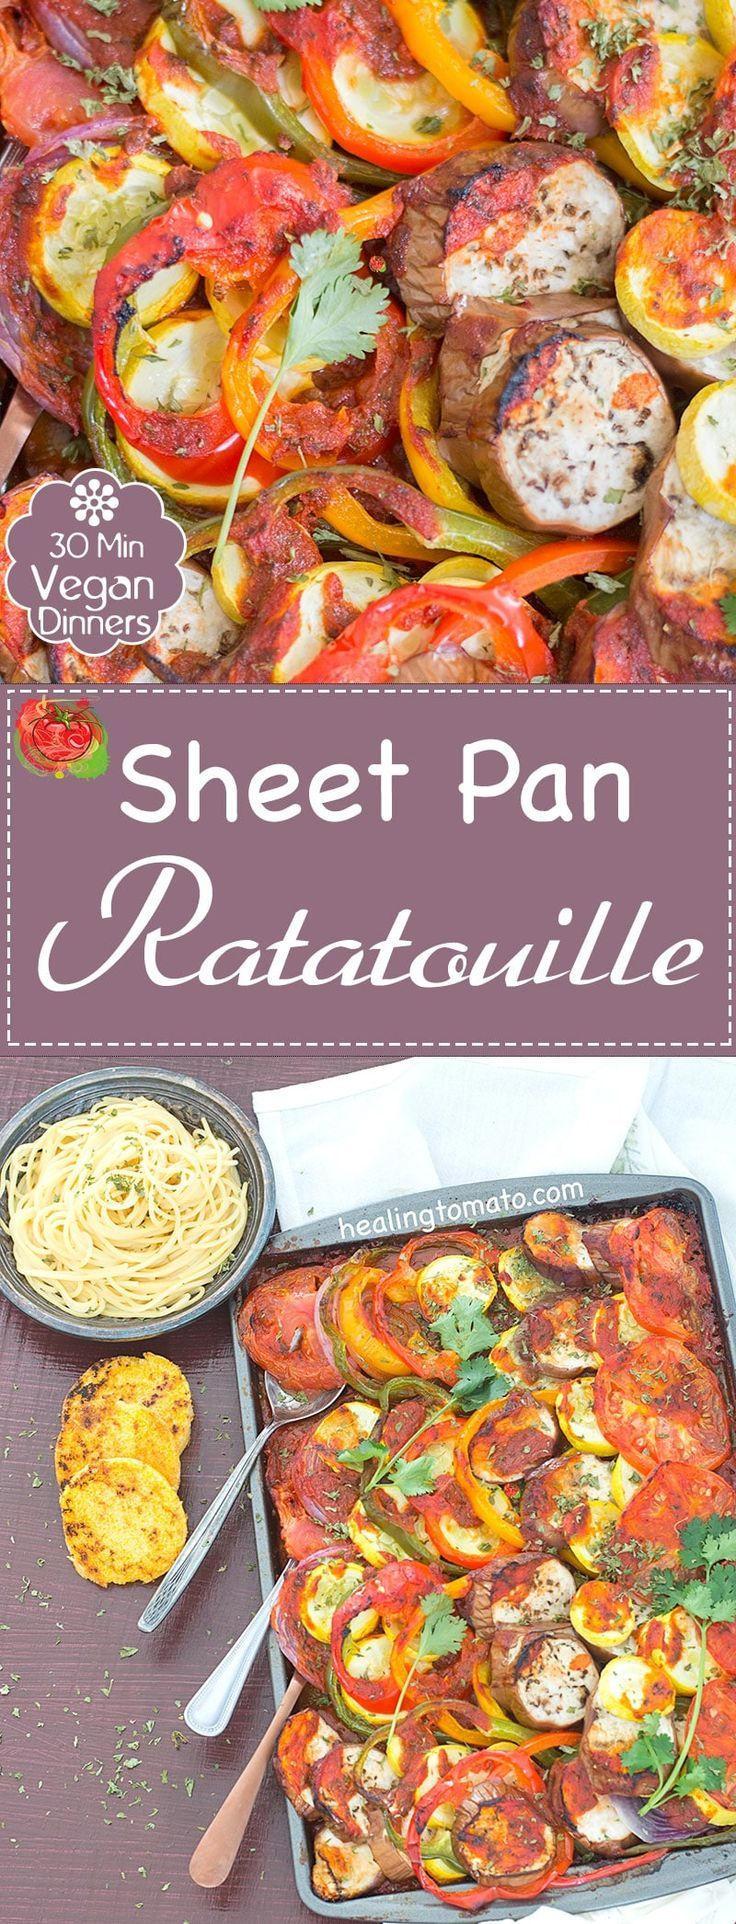 Quick Sheet Pan Ratatouille Dinner Recipe for the whole family to enjoy. Its a hearty and low calorie summer recipe made with garden fresh vegetables.